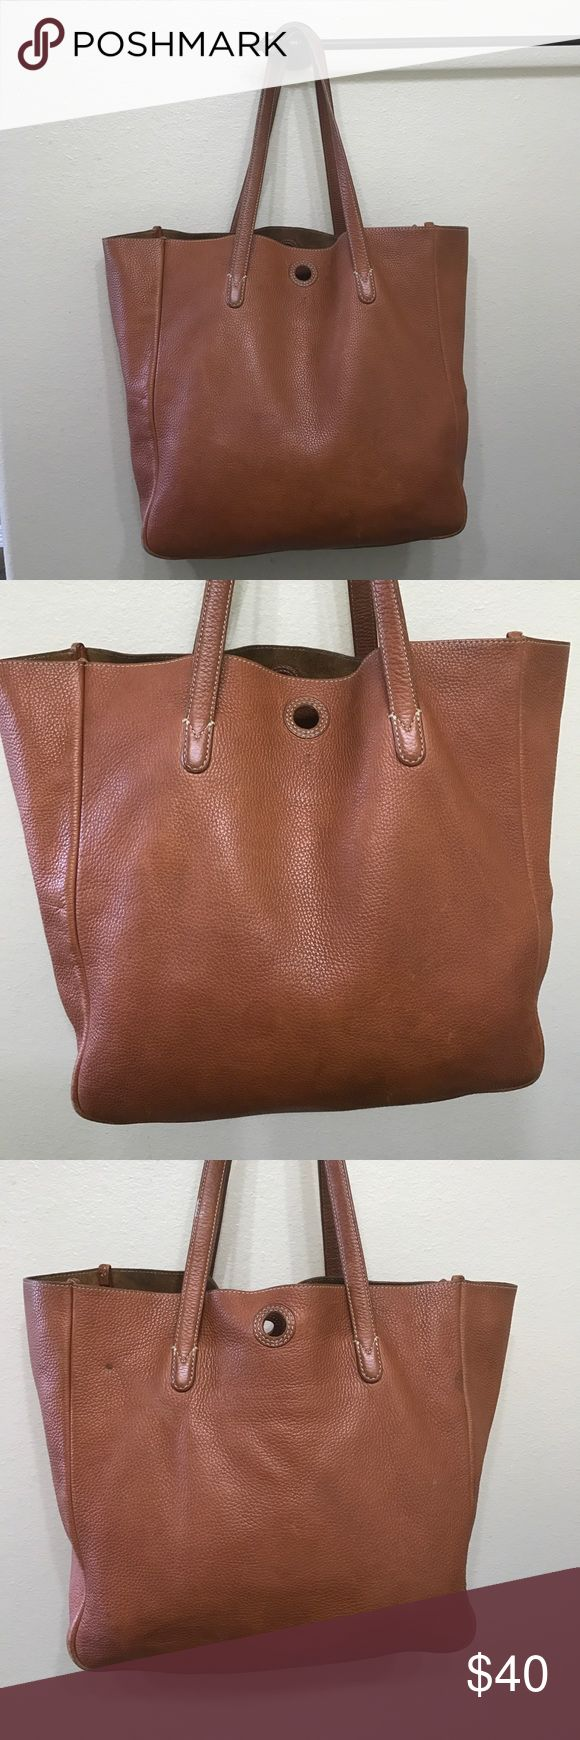 """J. Crew XL leather tote bag purse J. Crew XL leather tote bag purse vintage look as leather does have marks throughout the bag wear on bottom corners  (scratched discolorations)  well worth taking to have the leather color touched up! Interior has wear & some pen stains Measures 19"""" long flat 13"""" tall 5"""" wide strap drop 8"""" sold as is J. Crew Bags Totes"""